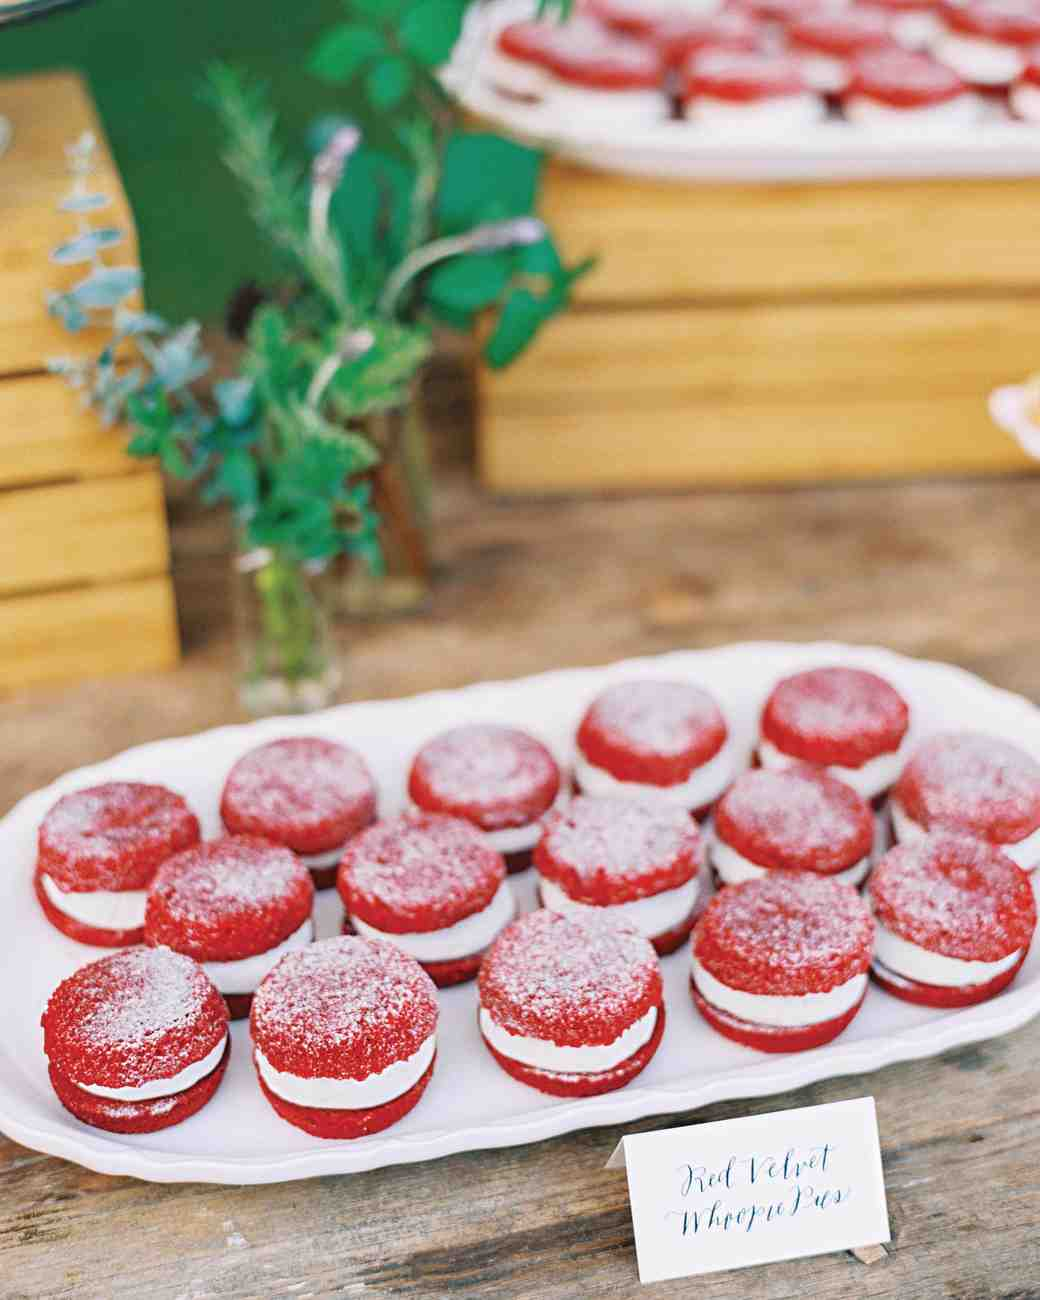 josh-matt-real-wedding-dessert-macaroons.jpg